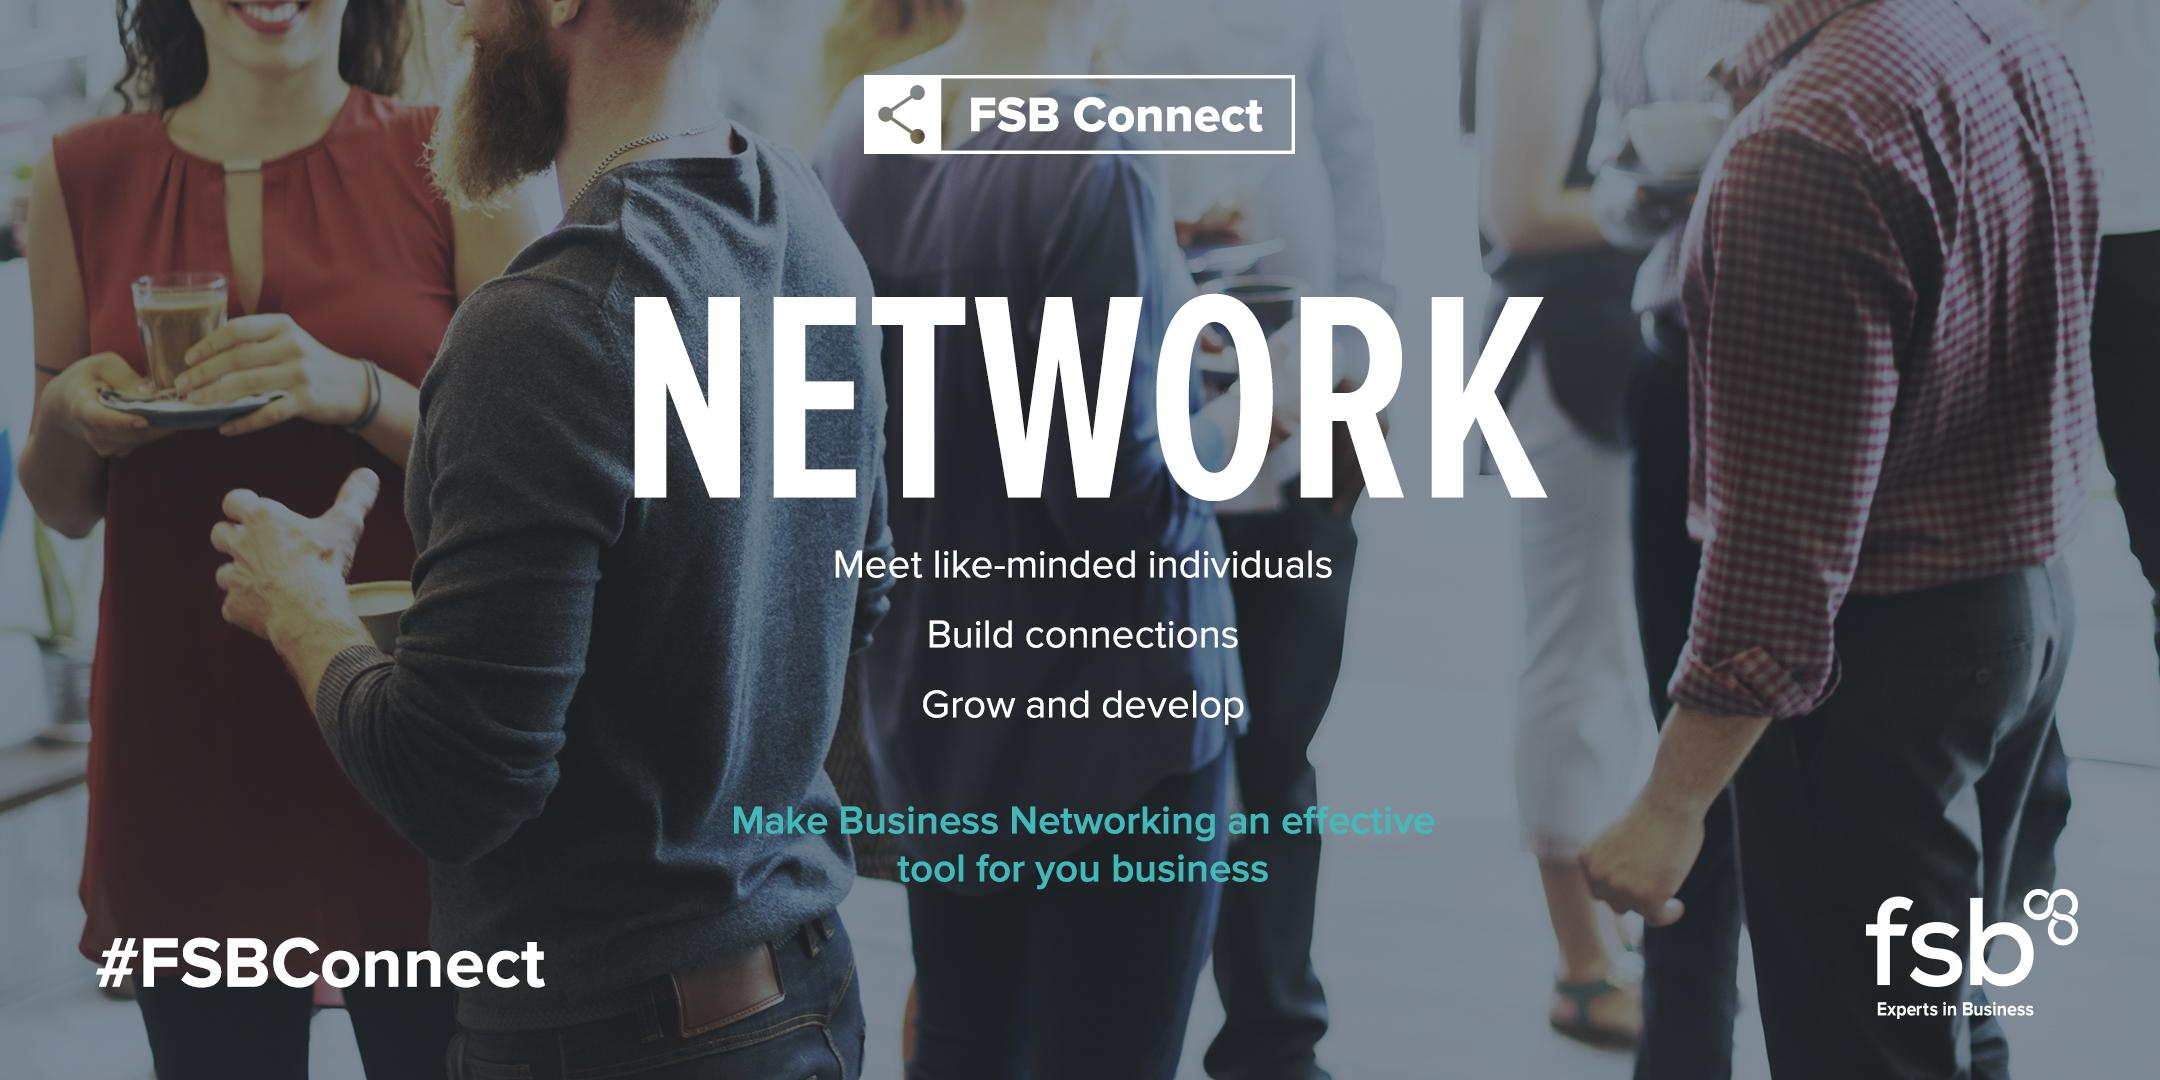 #FSBConnect Eastbourne and #FSBConnect 1066